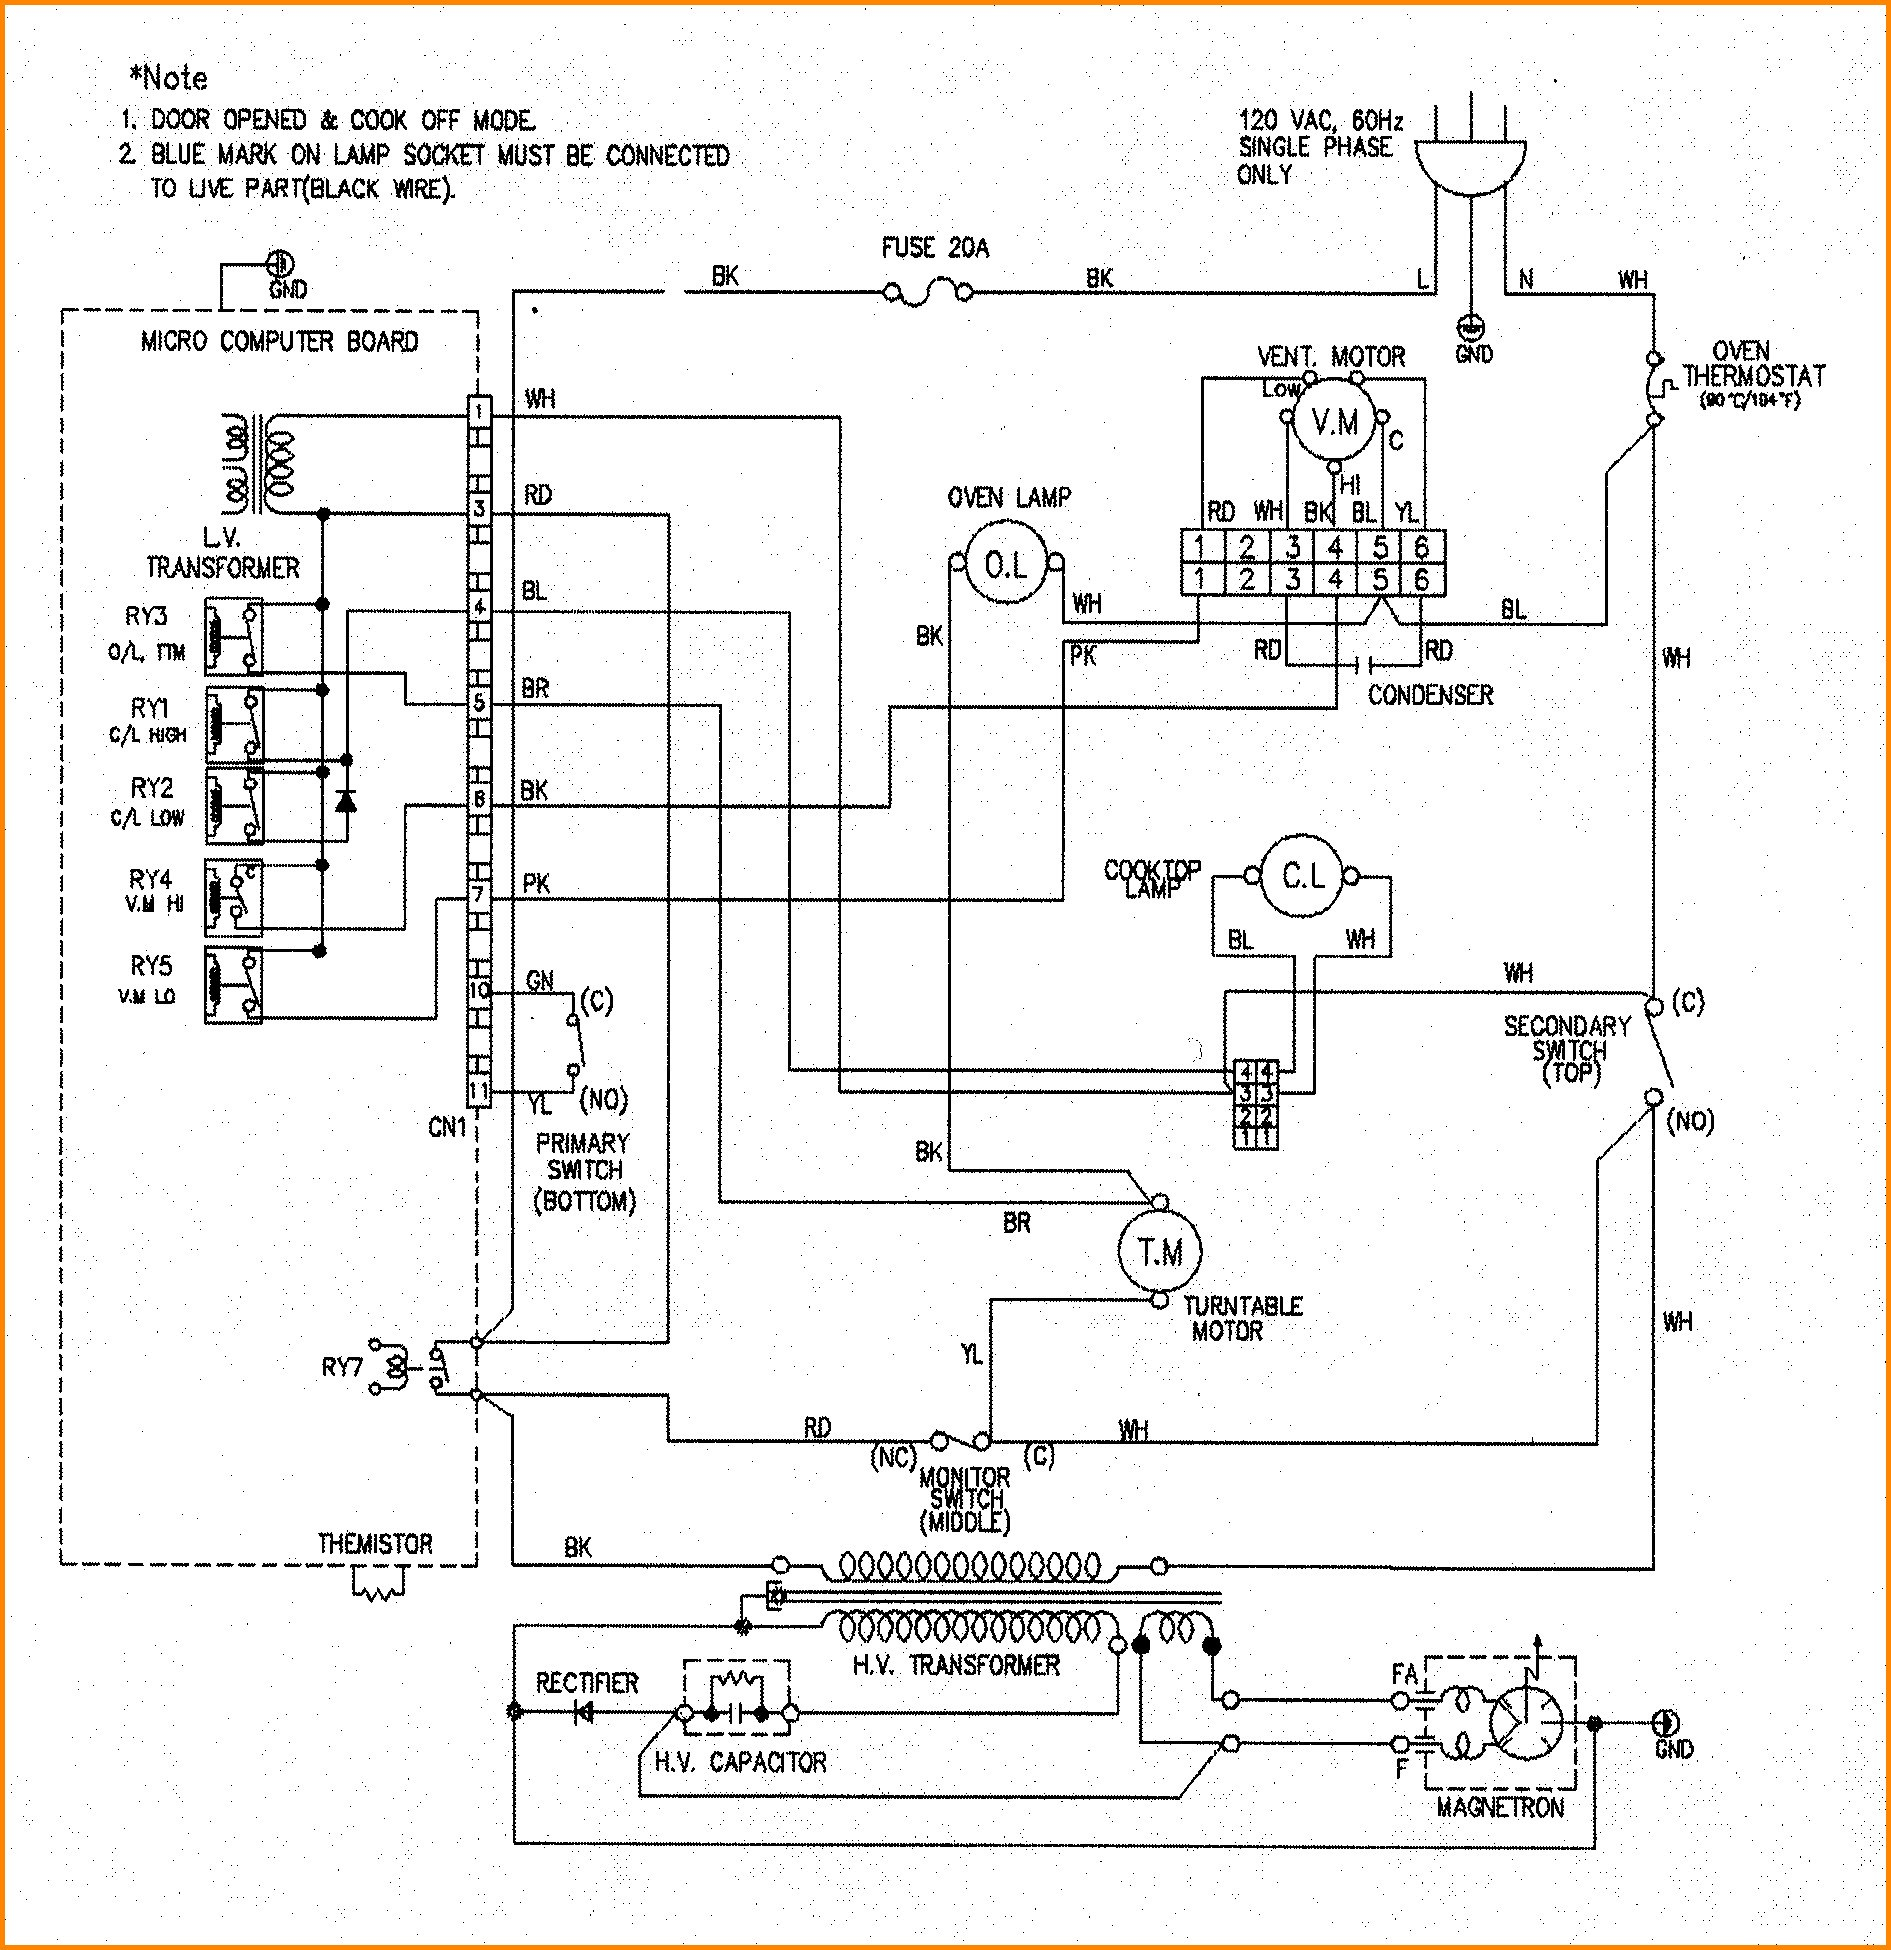 Ge Oven Thermostat Wiring - Wiring Diagram Save Ge Thermostat Wiring Diagram on